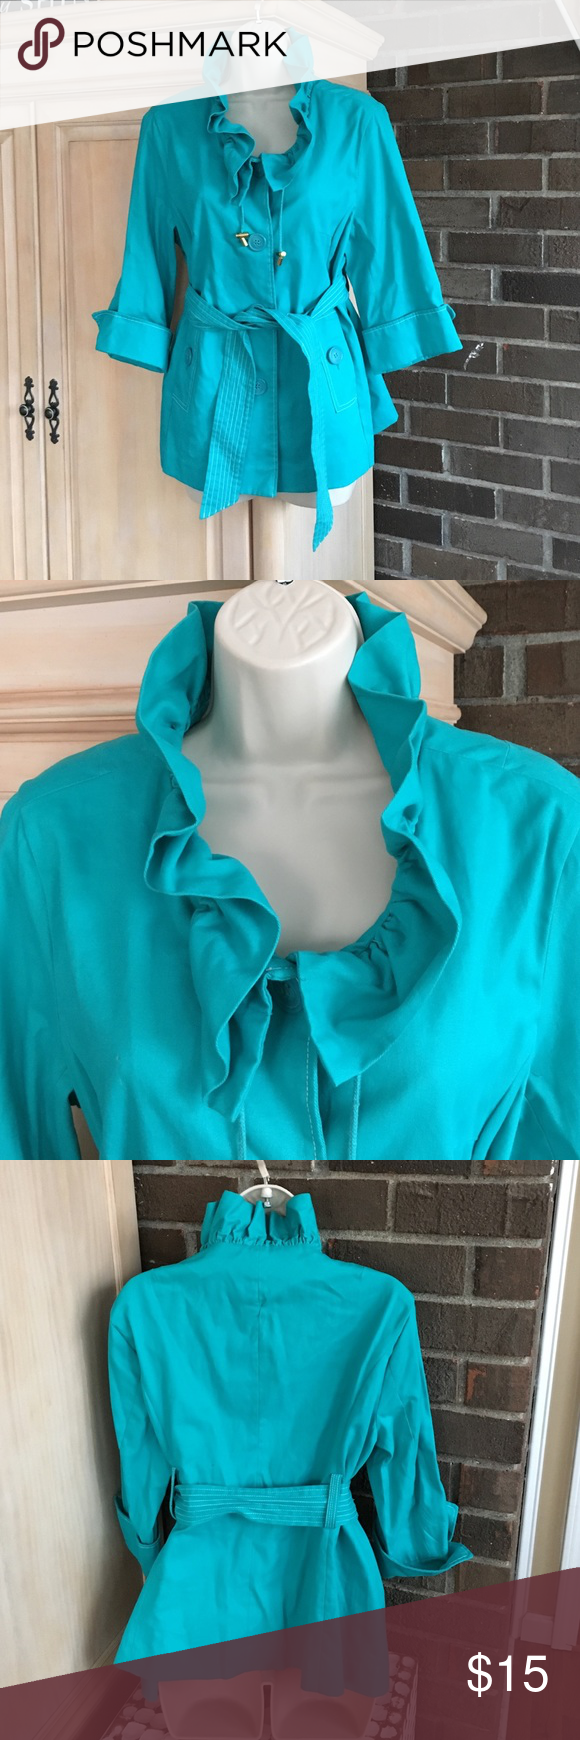 LUII TEAL BLUE COAT SZ M In excellent condition luii Jackets & Coats Blazers